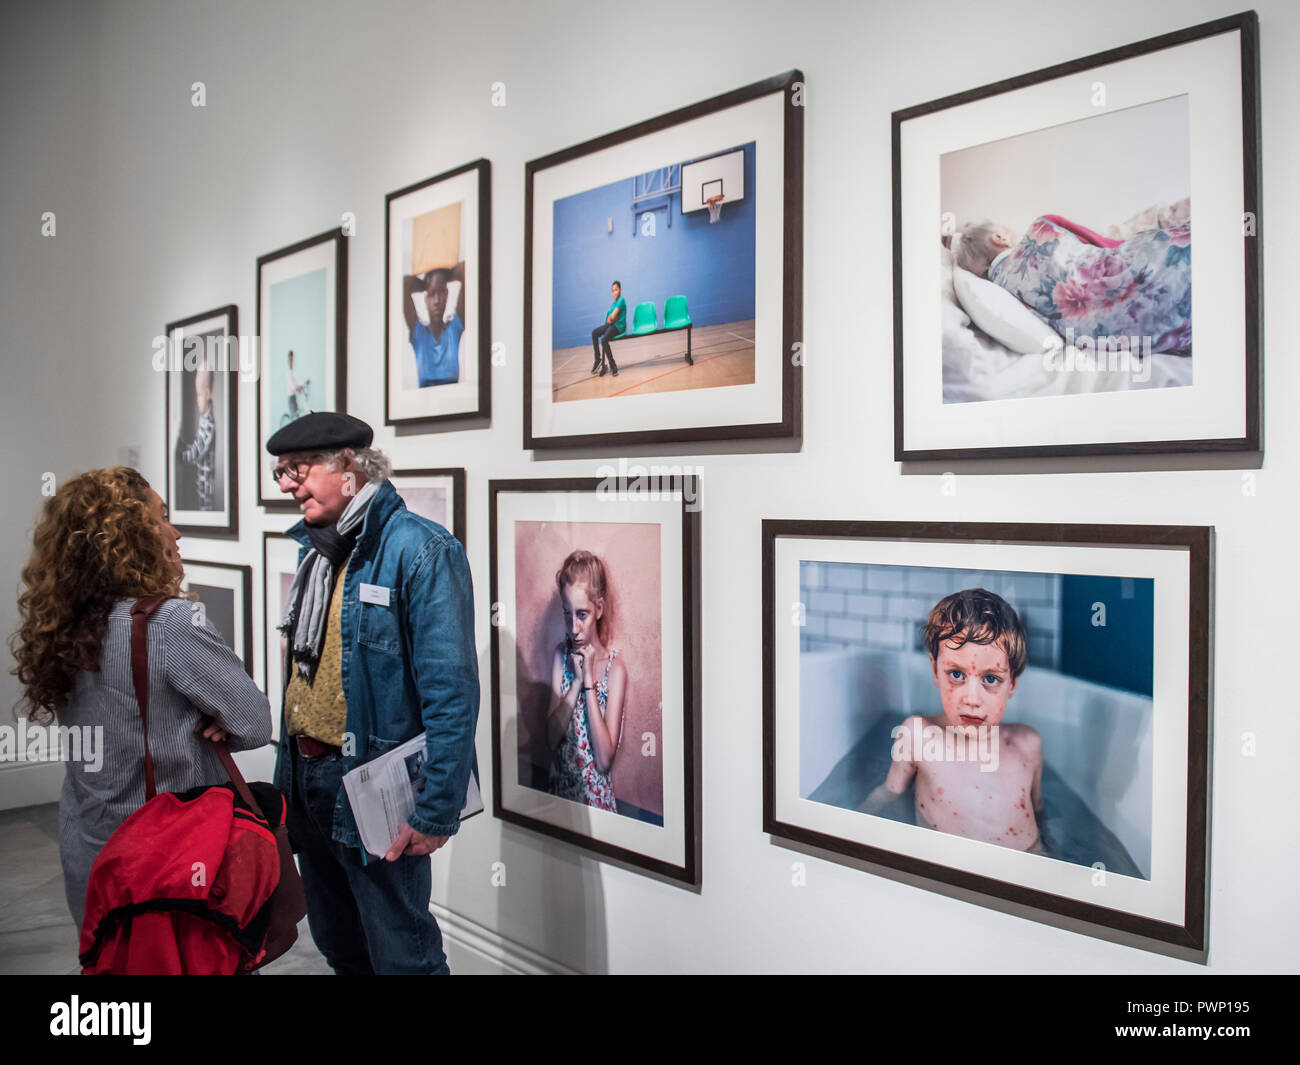 London, UK. 17th Oct, 2018. Shortlisted portraits on display at the National Portrait Gallery, London, as part of the Taylor Wessing Photographic Portrait Prize 2018 exhibition from 18 October 2018 to 27 January 2019. Credit: Guy Bell/Alamy Live News - Stock Image